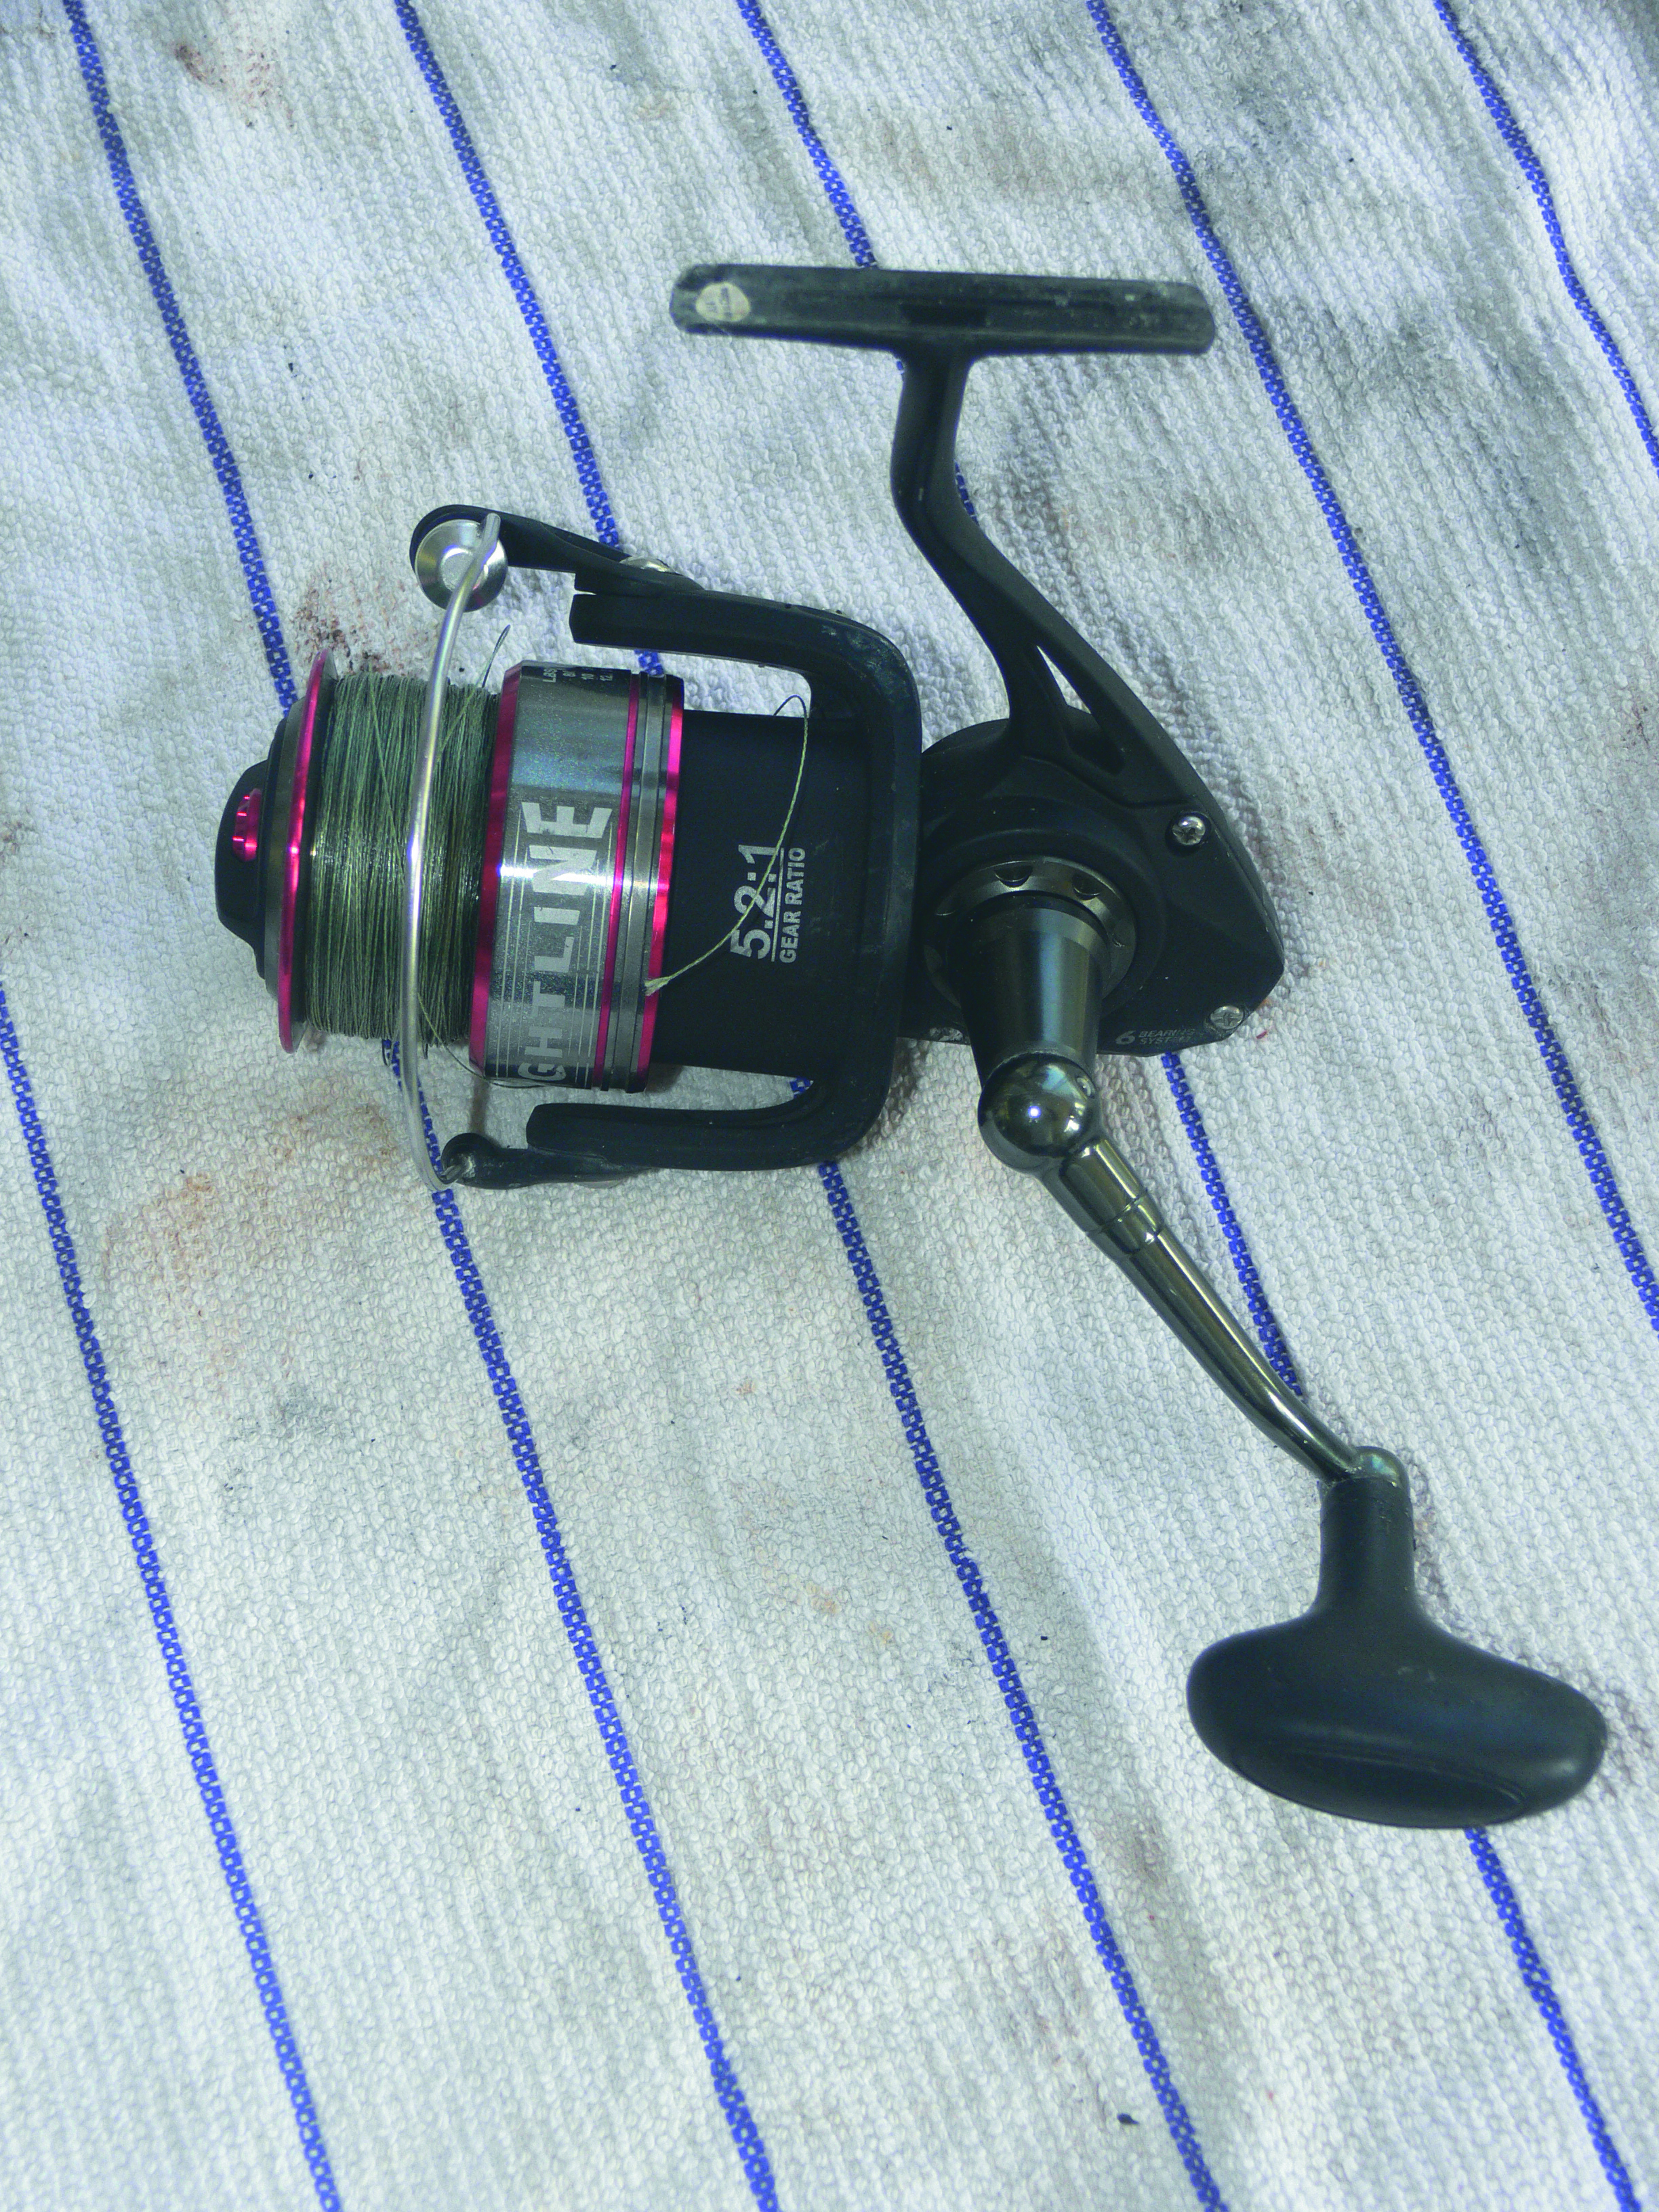 Step eleven to maintain your spinning reel